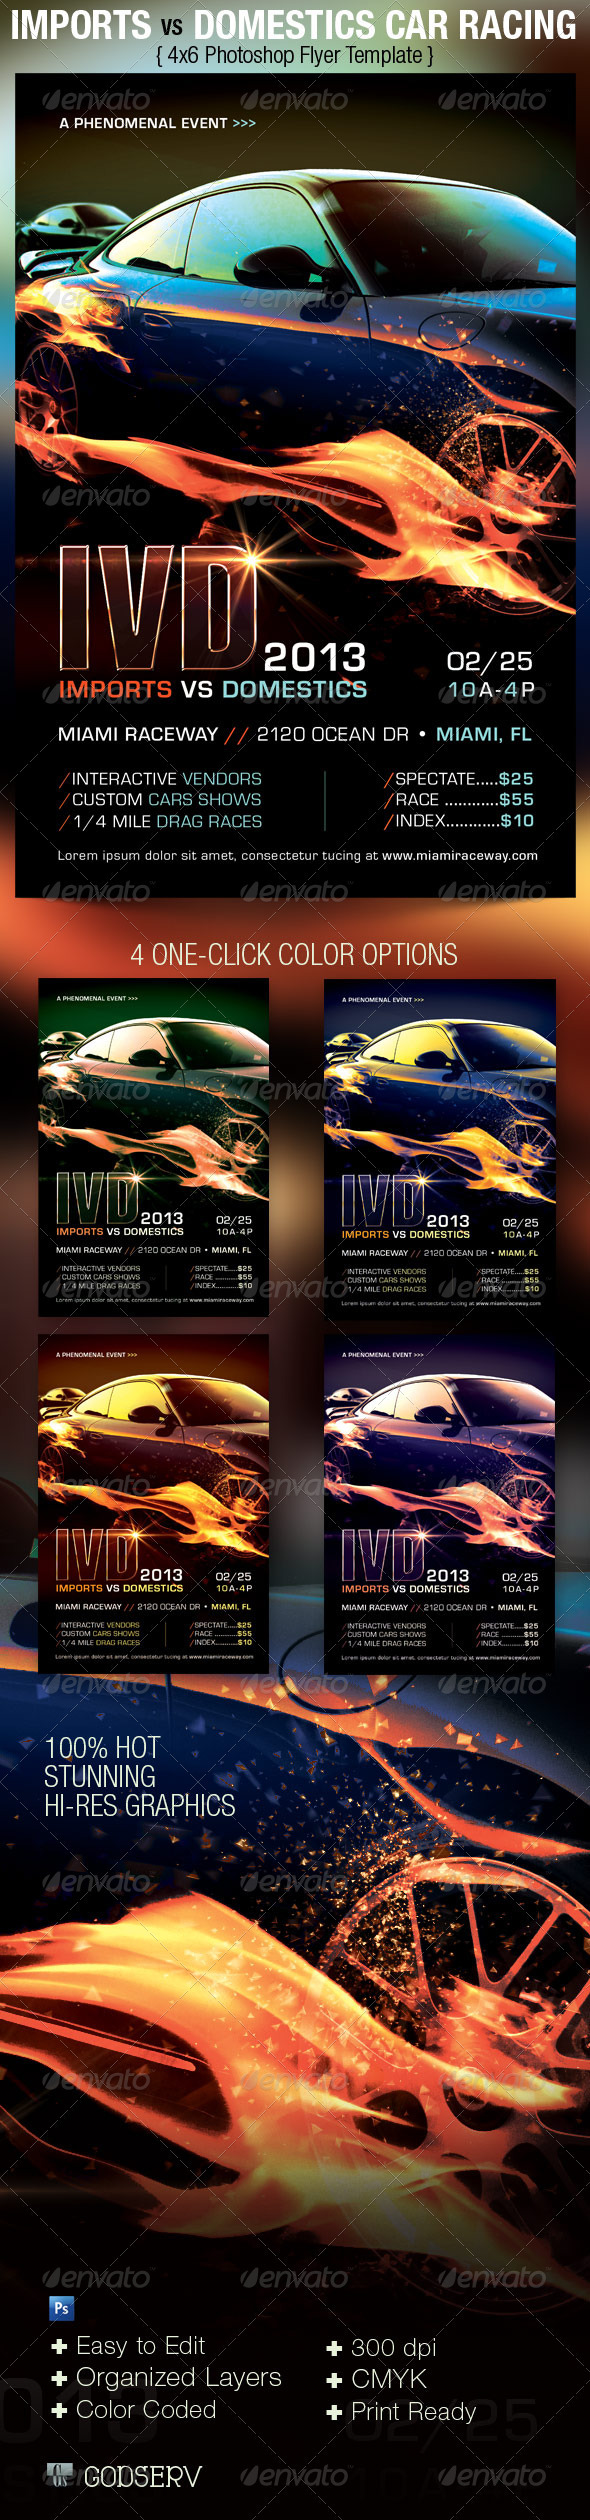 Import vs Domestics Car Racing Flyer Template - Sports Events